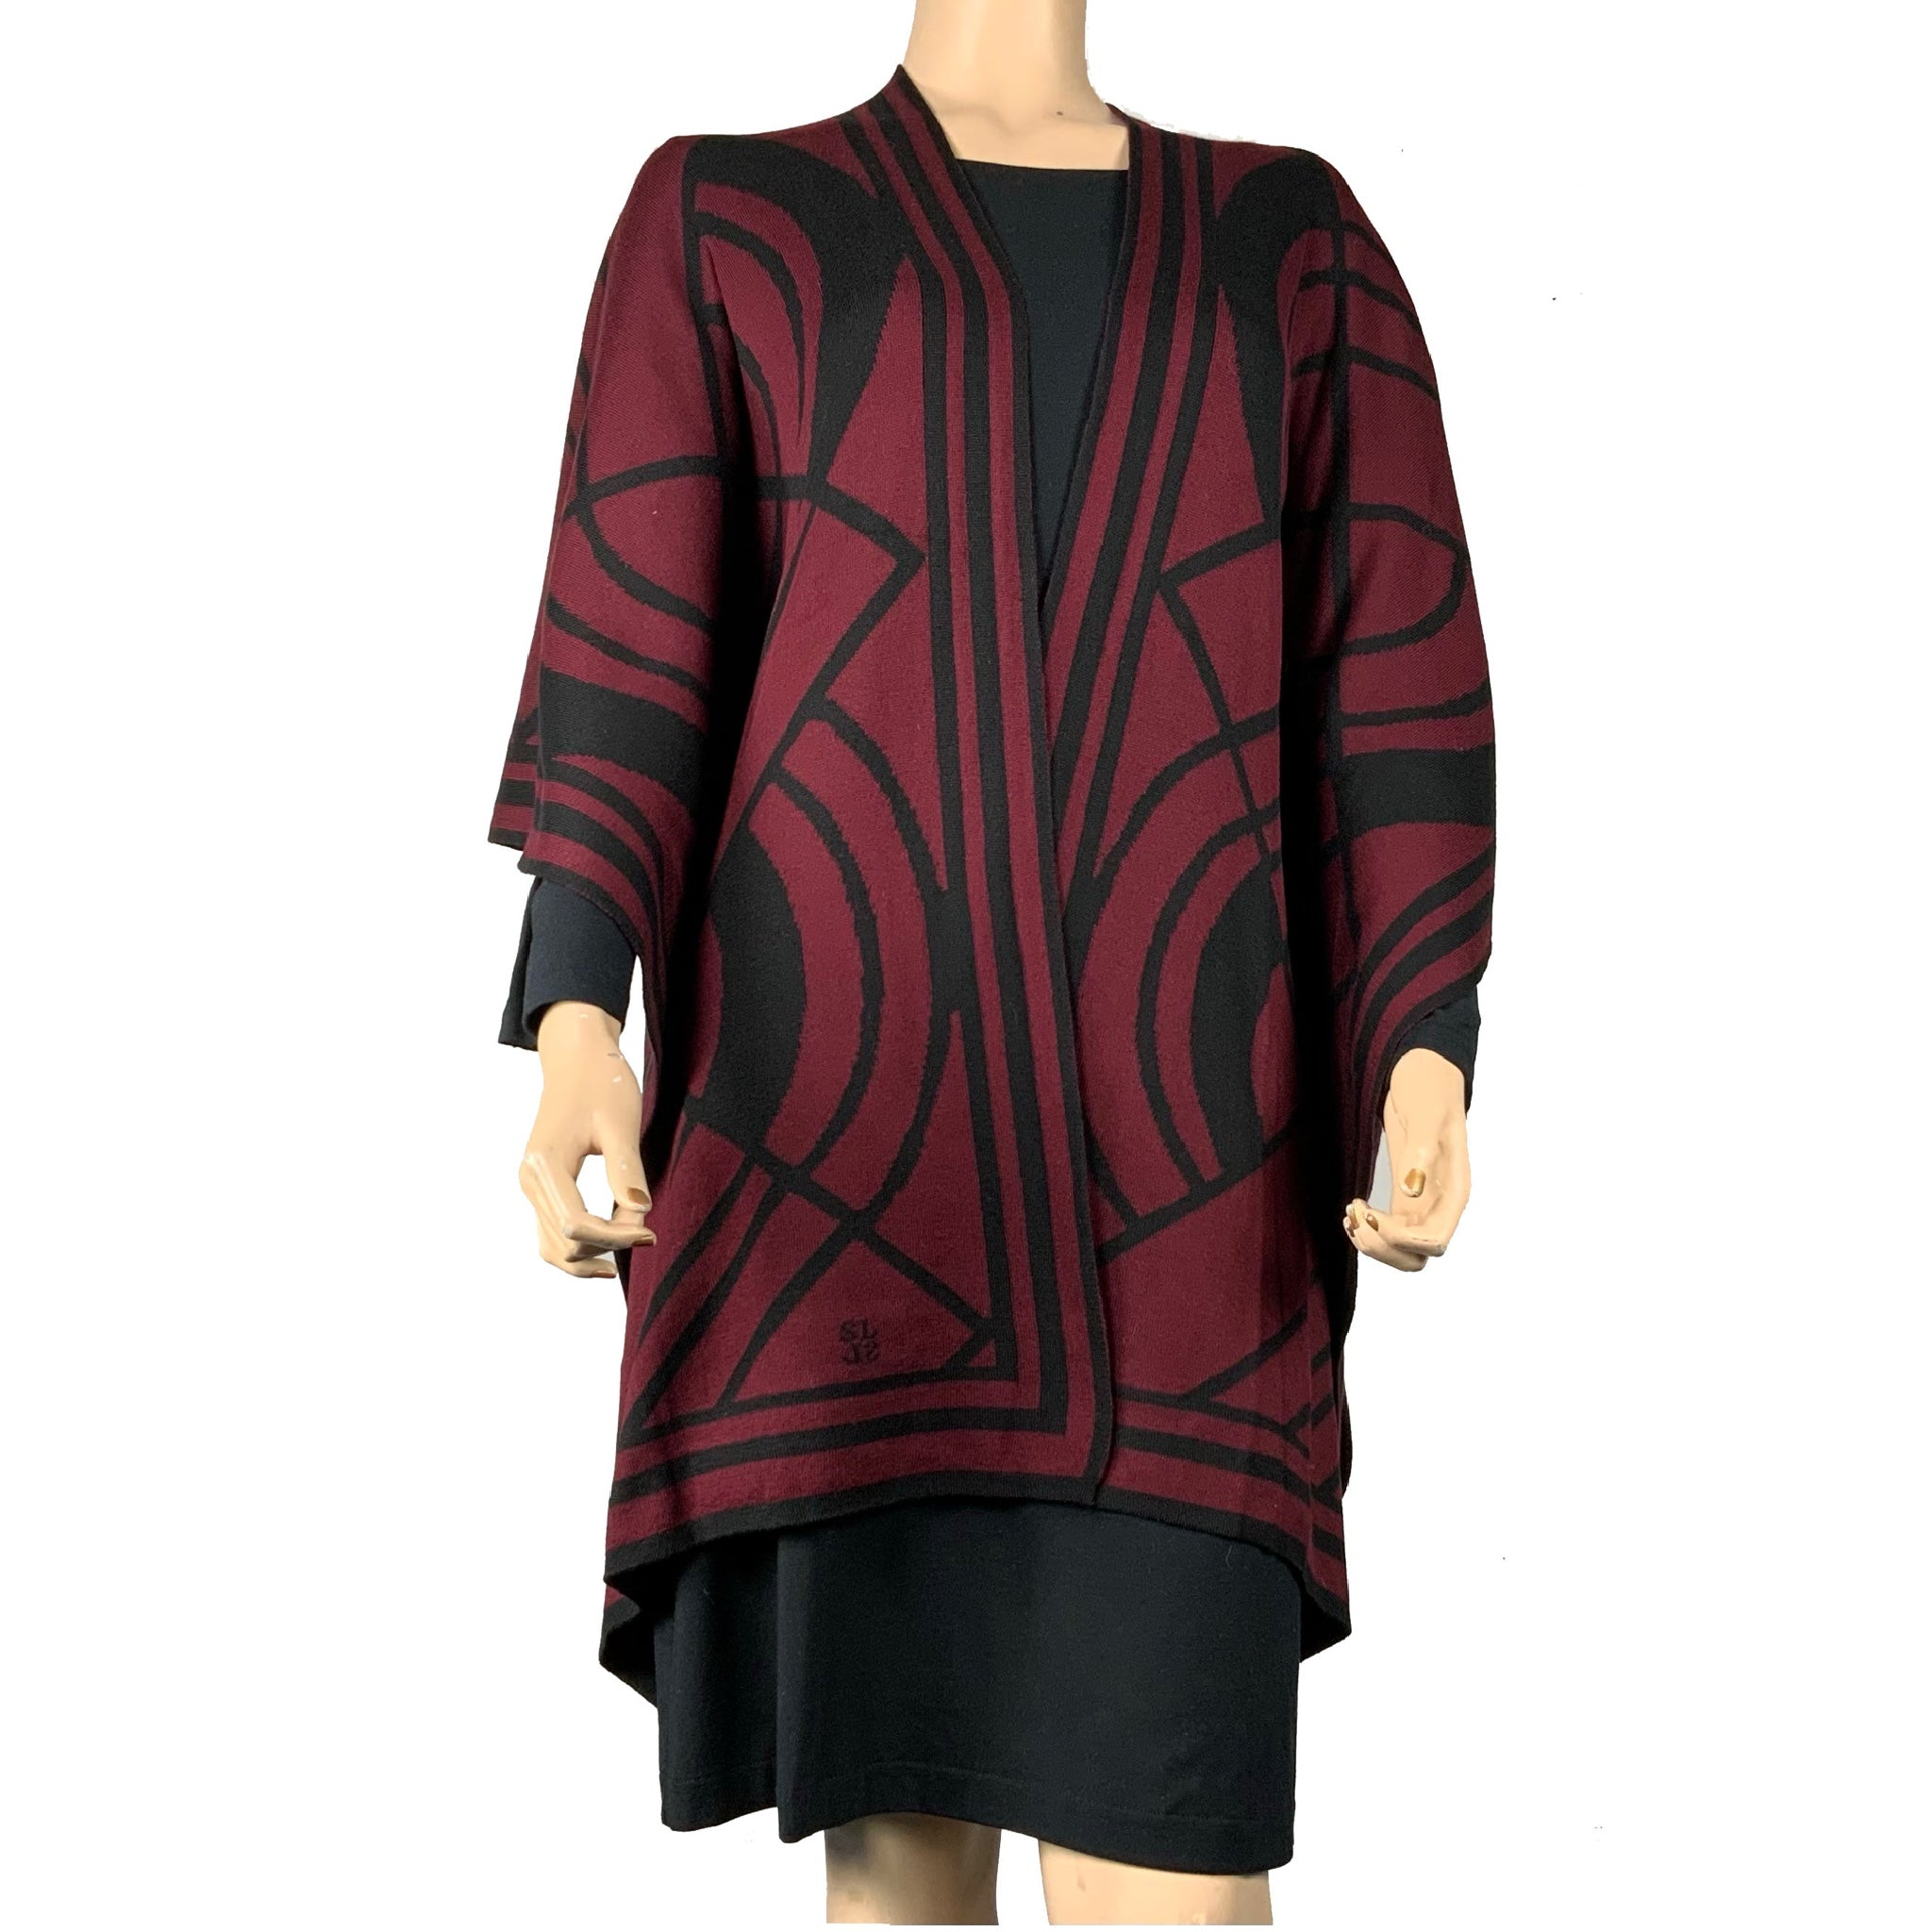 Deco Cape Black & Cabernet